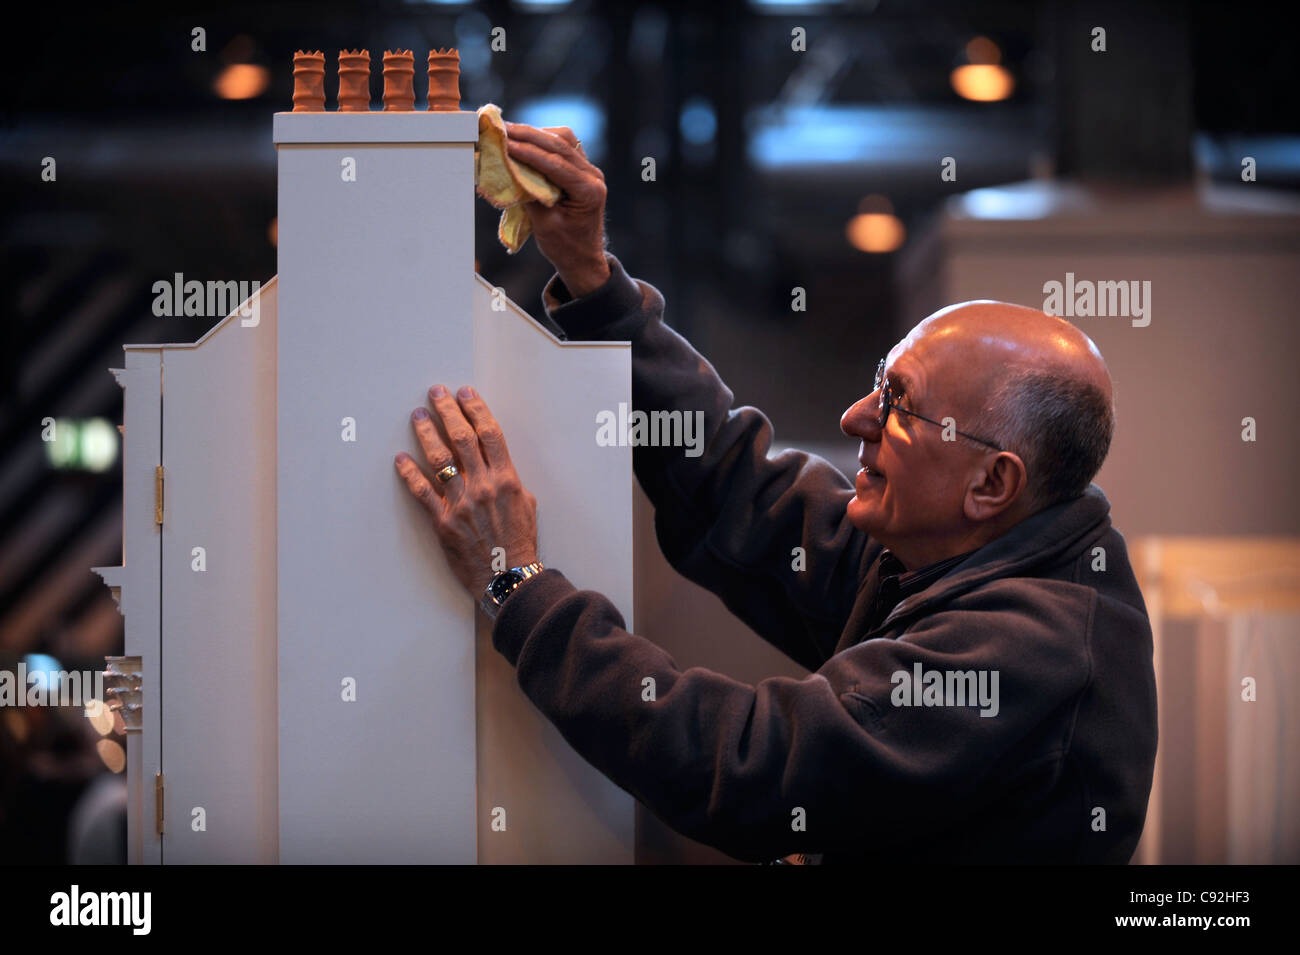 A miniatura enthusiast with his Georgian style dolls' houses at the miniature modelling Show at The NEC, Birmingham - Stock Image